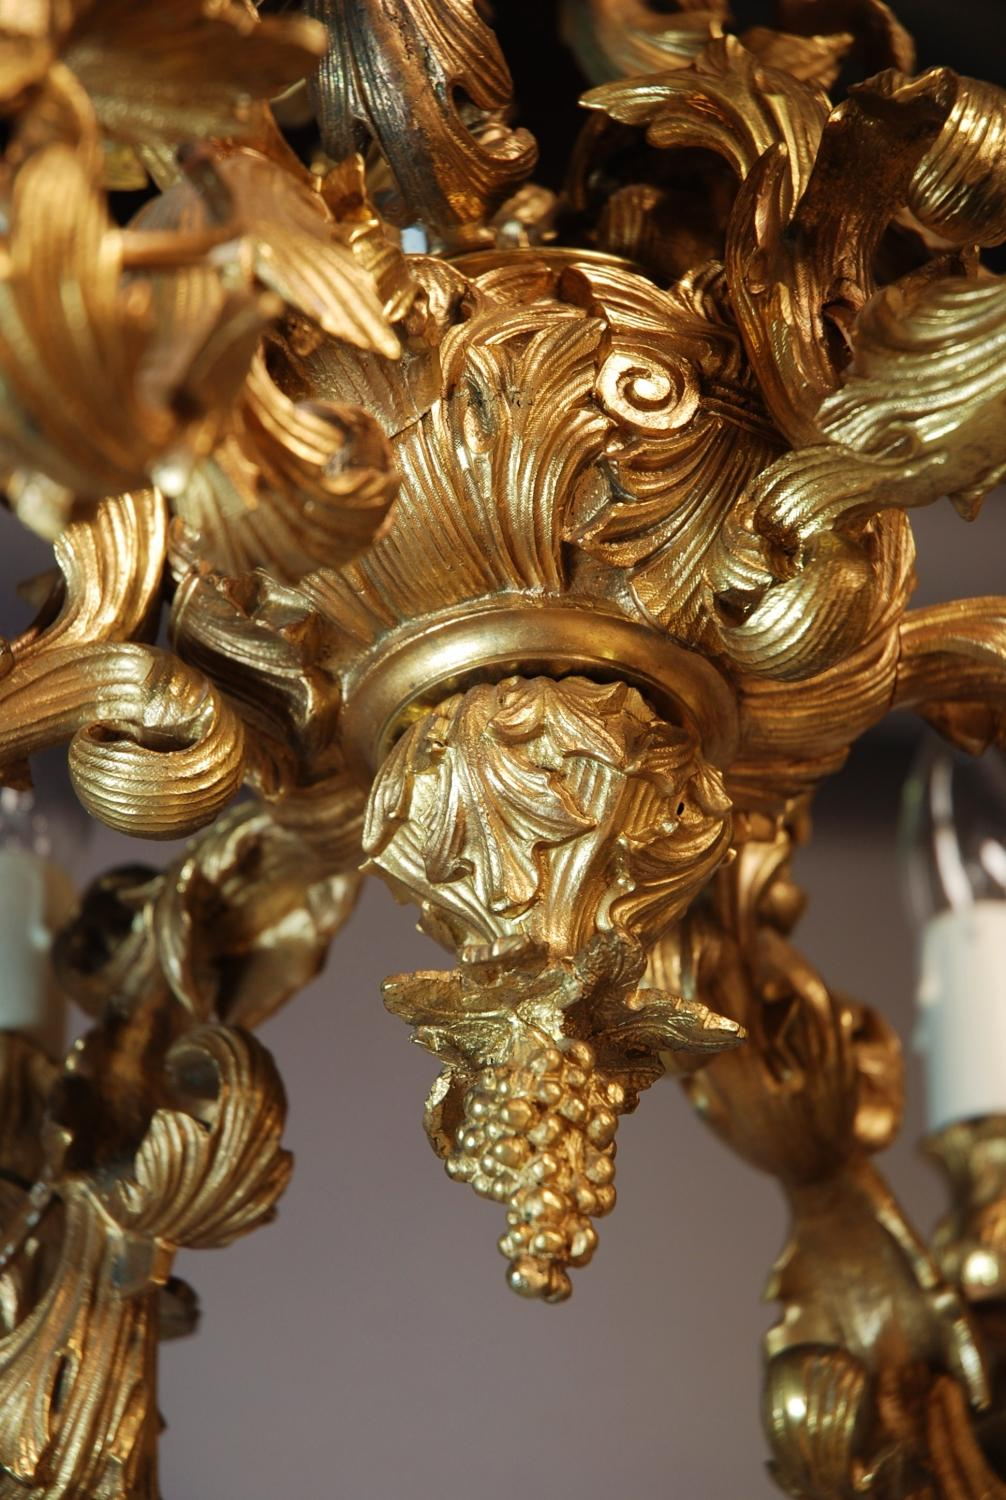 Rococo style 19thc french ormolu chandelier in sold archive for What is the other name for the rococo style